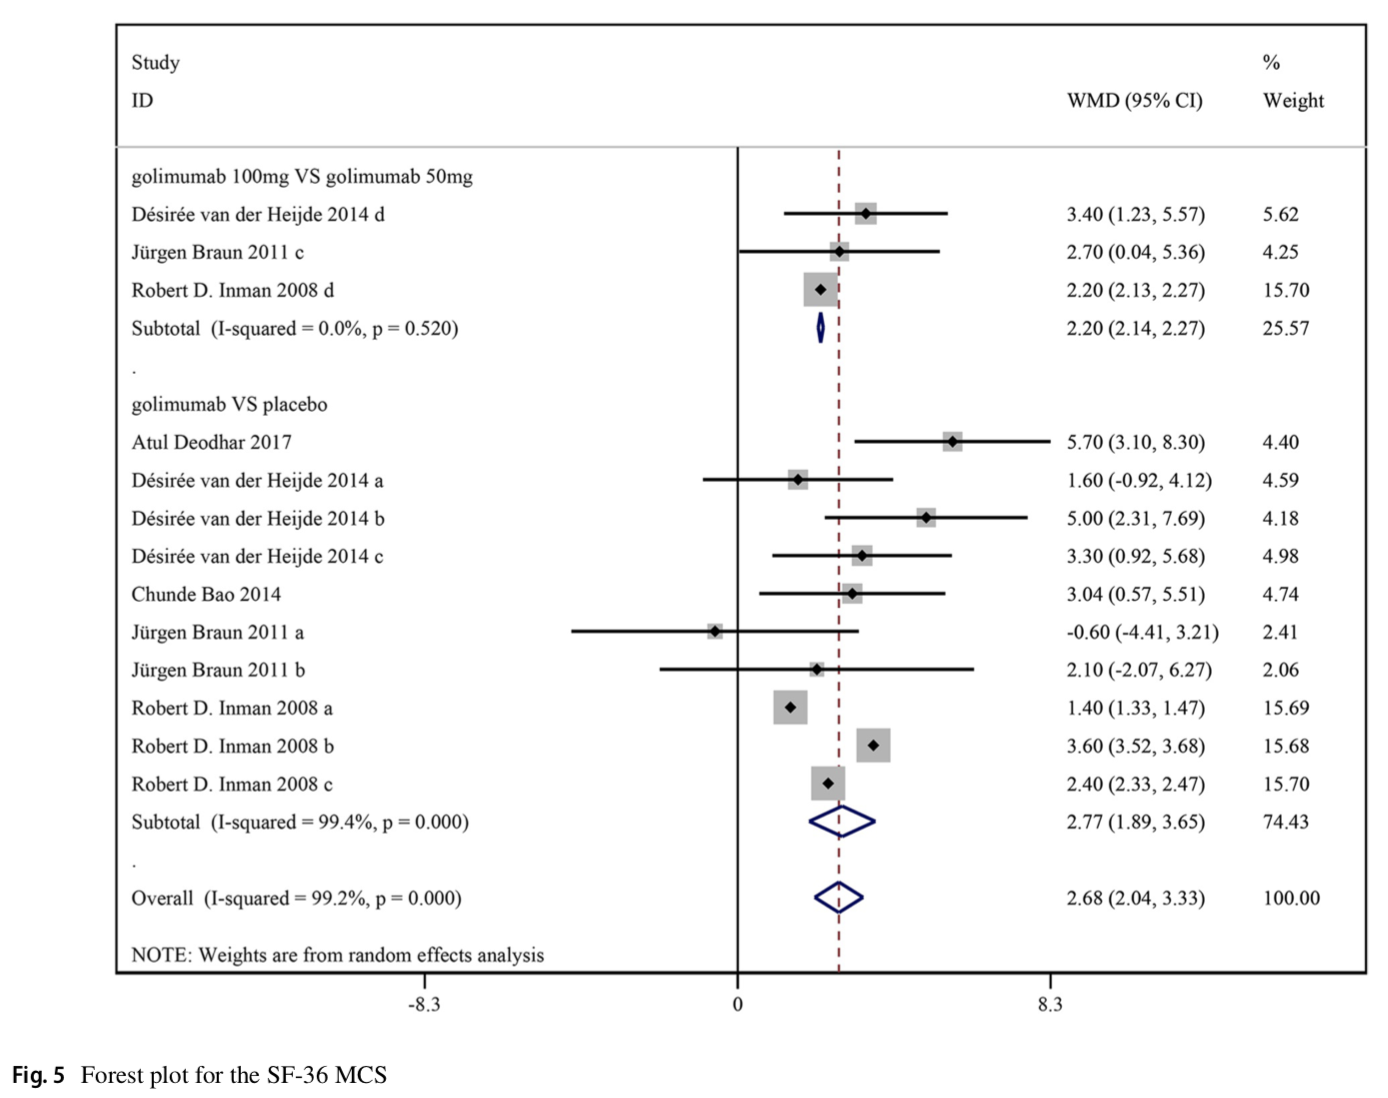 Patients with ankylosing spondylitis treatment by golimumab: a systematic review and meta-analysis